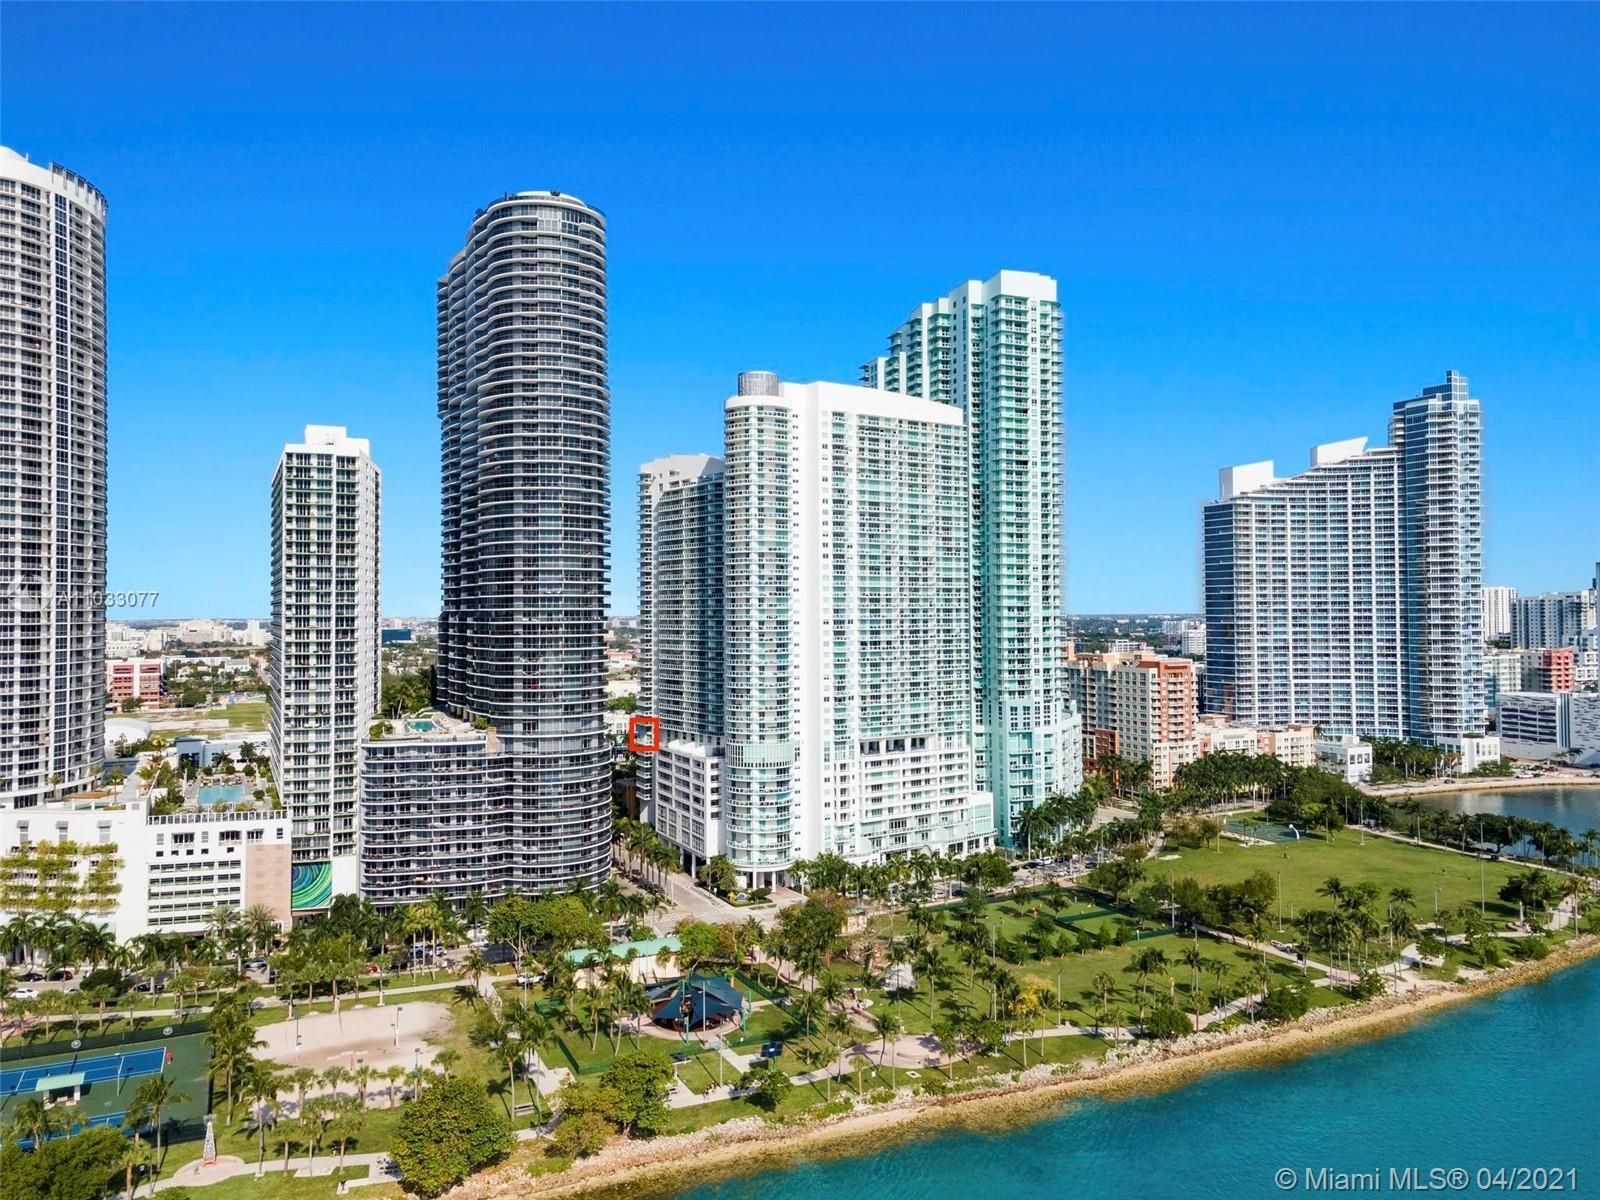 Live in Edgewater with beautiful views in this spectacular one of a kind 3 bedroom 3.5 bath unit wit